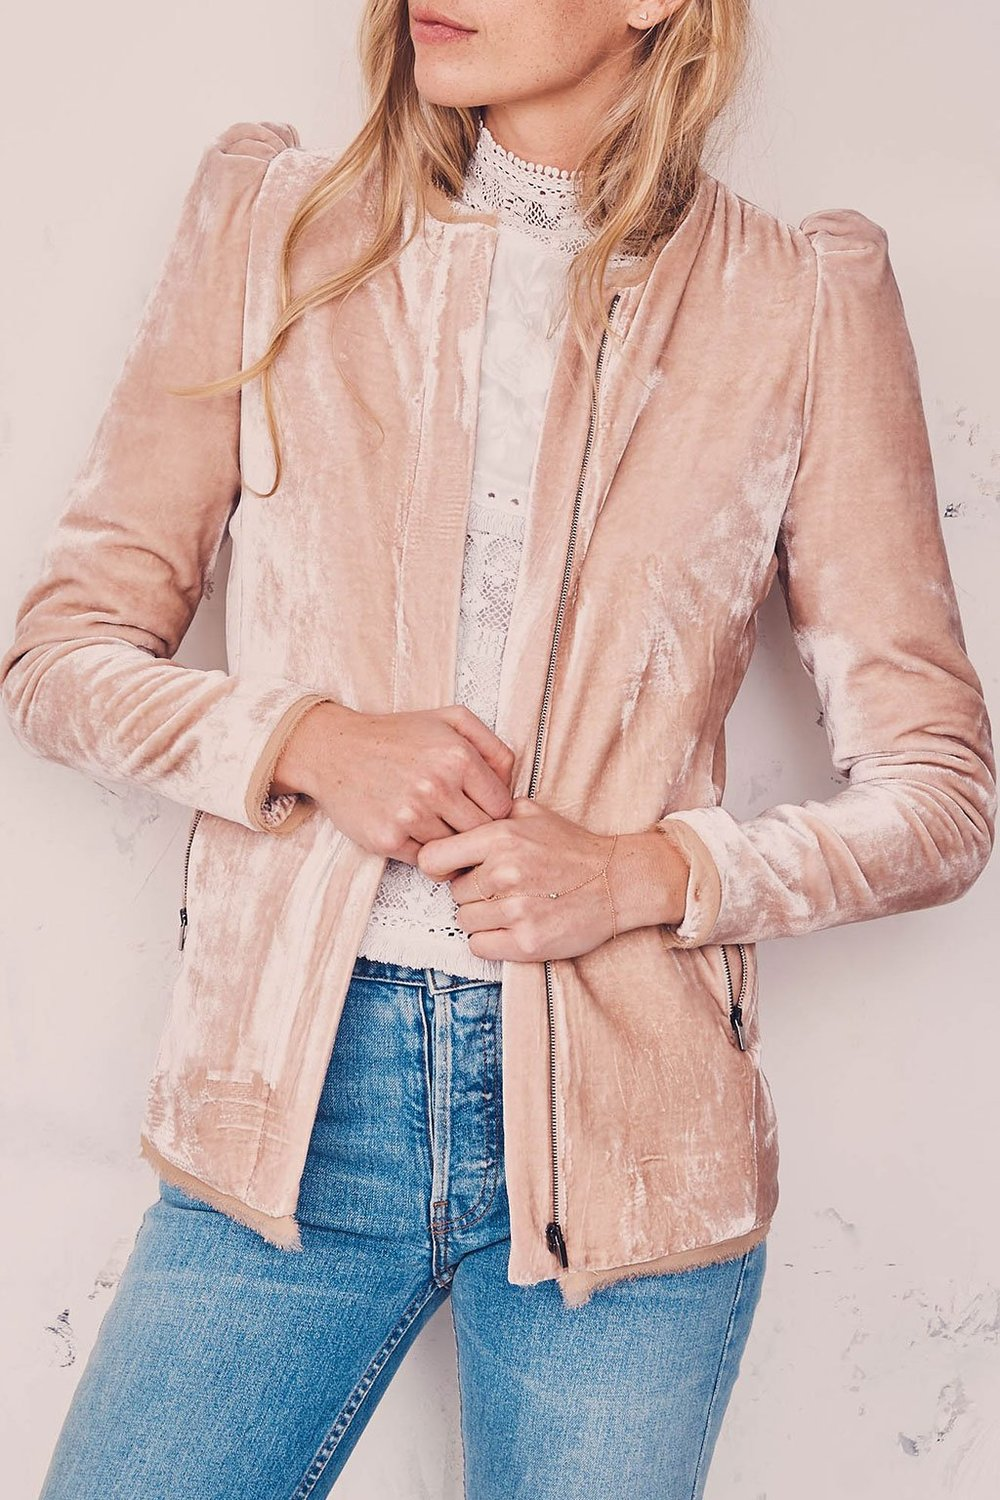 Loveshackfancy-Sienna-Jacket-Toasted-Almond--2_1024x.jpg